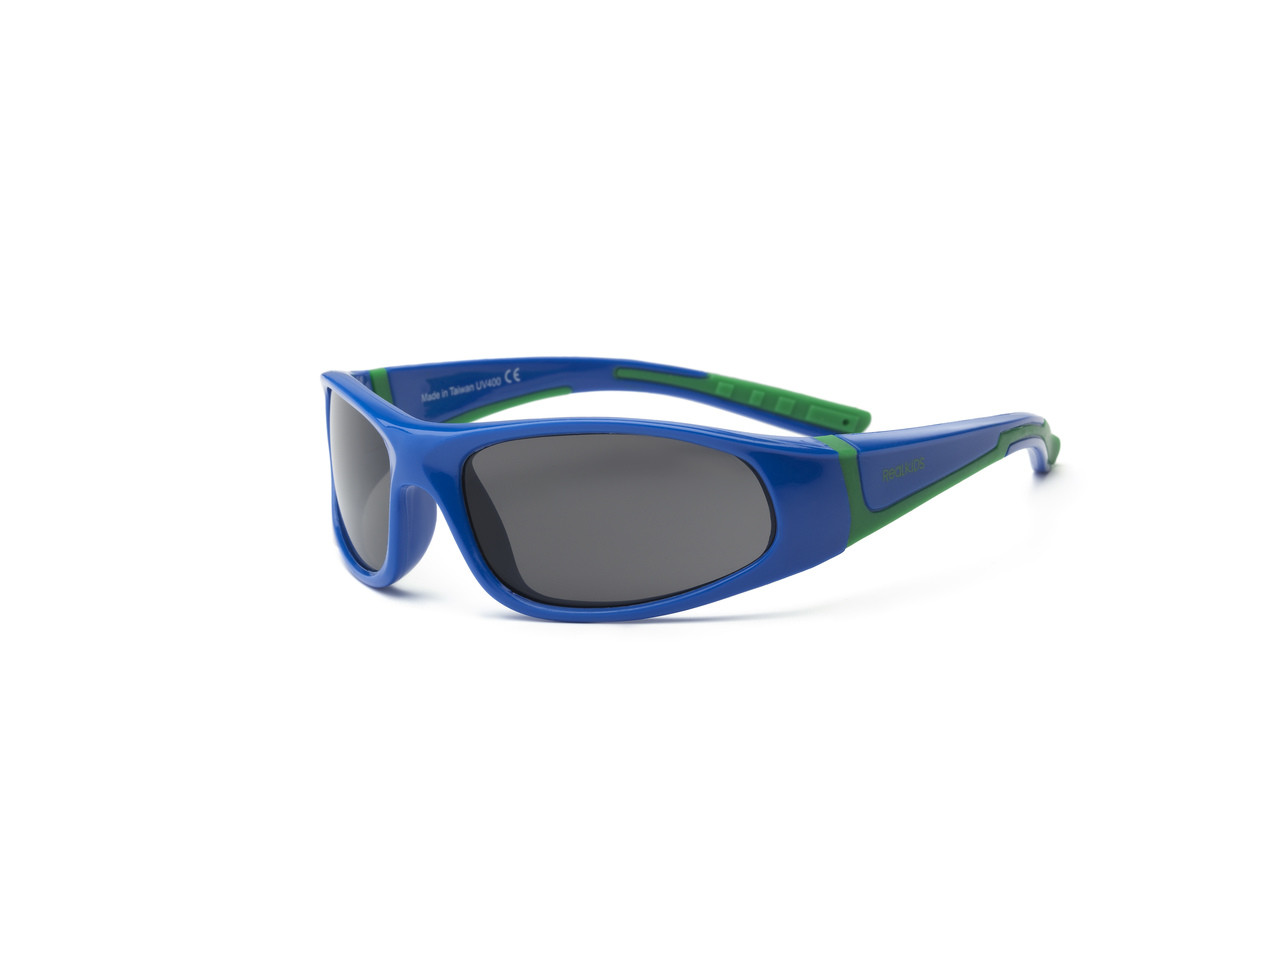 42e2fef539b Real Kids Shades MiGrocer - 4+ Kids ~ Bolt – Royal Blue Green eye ware